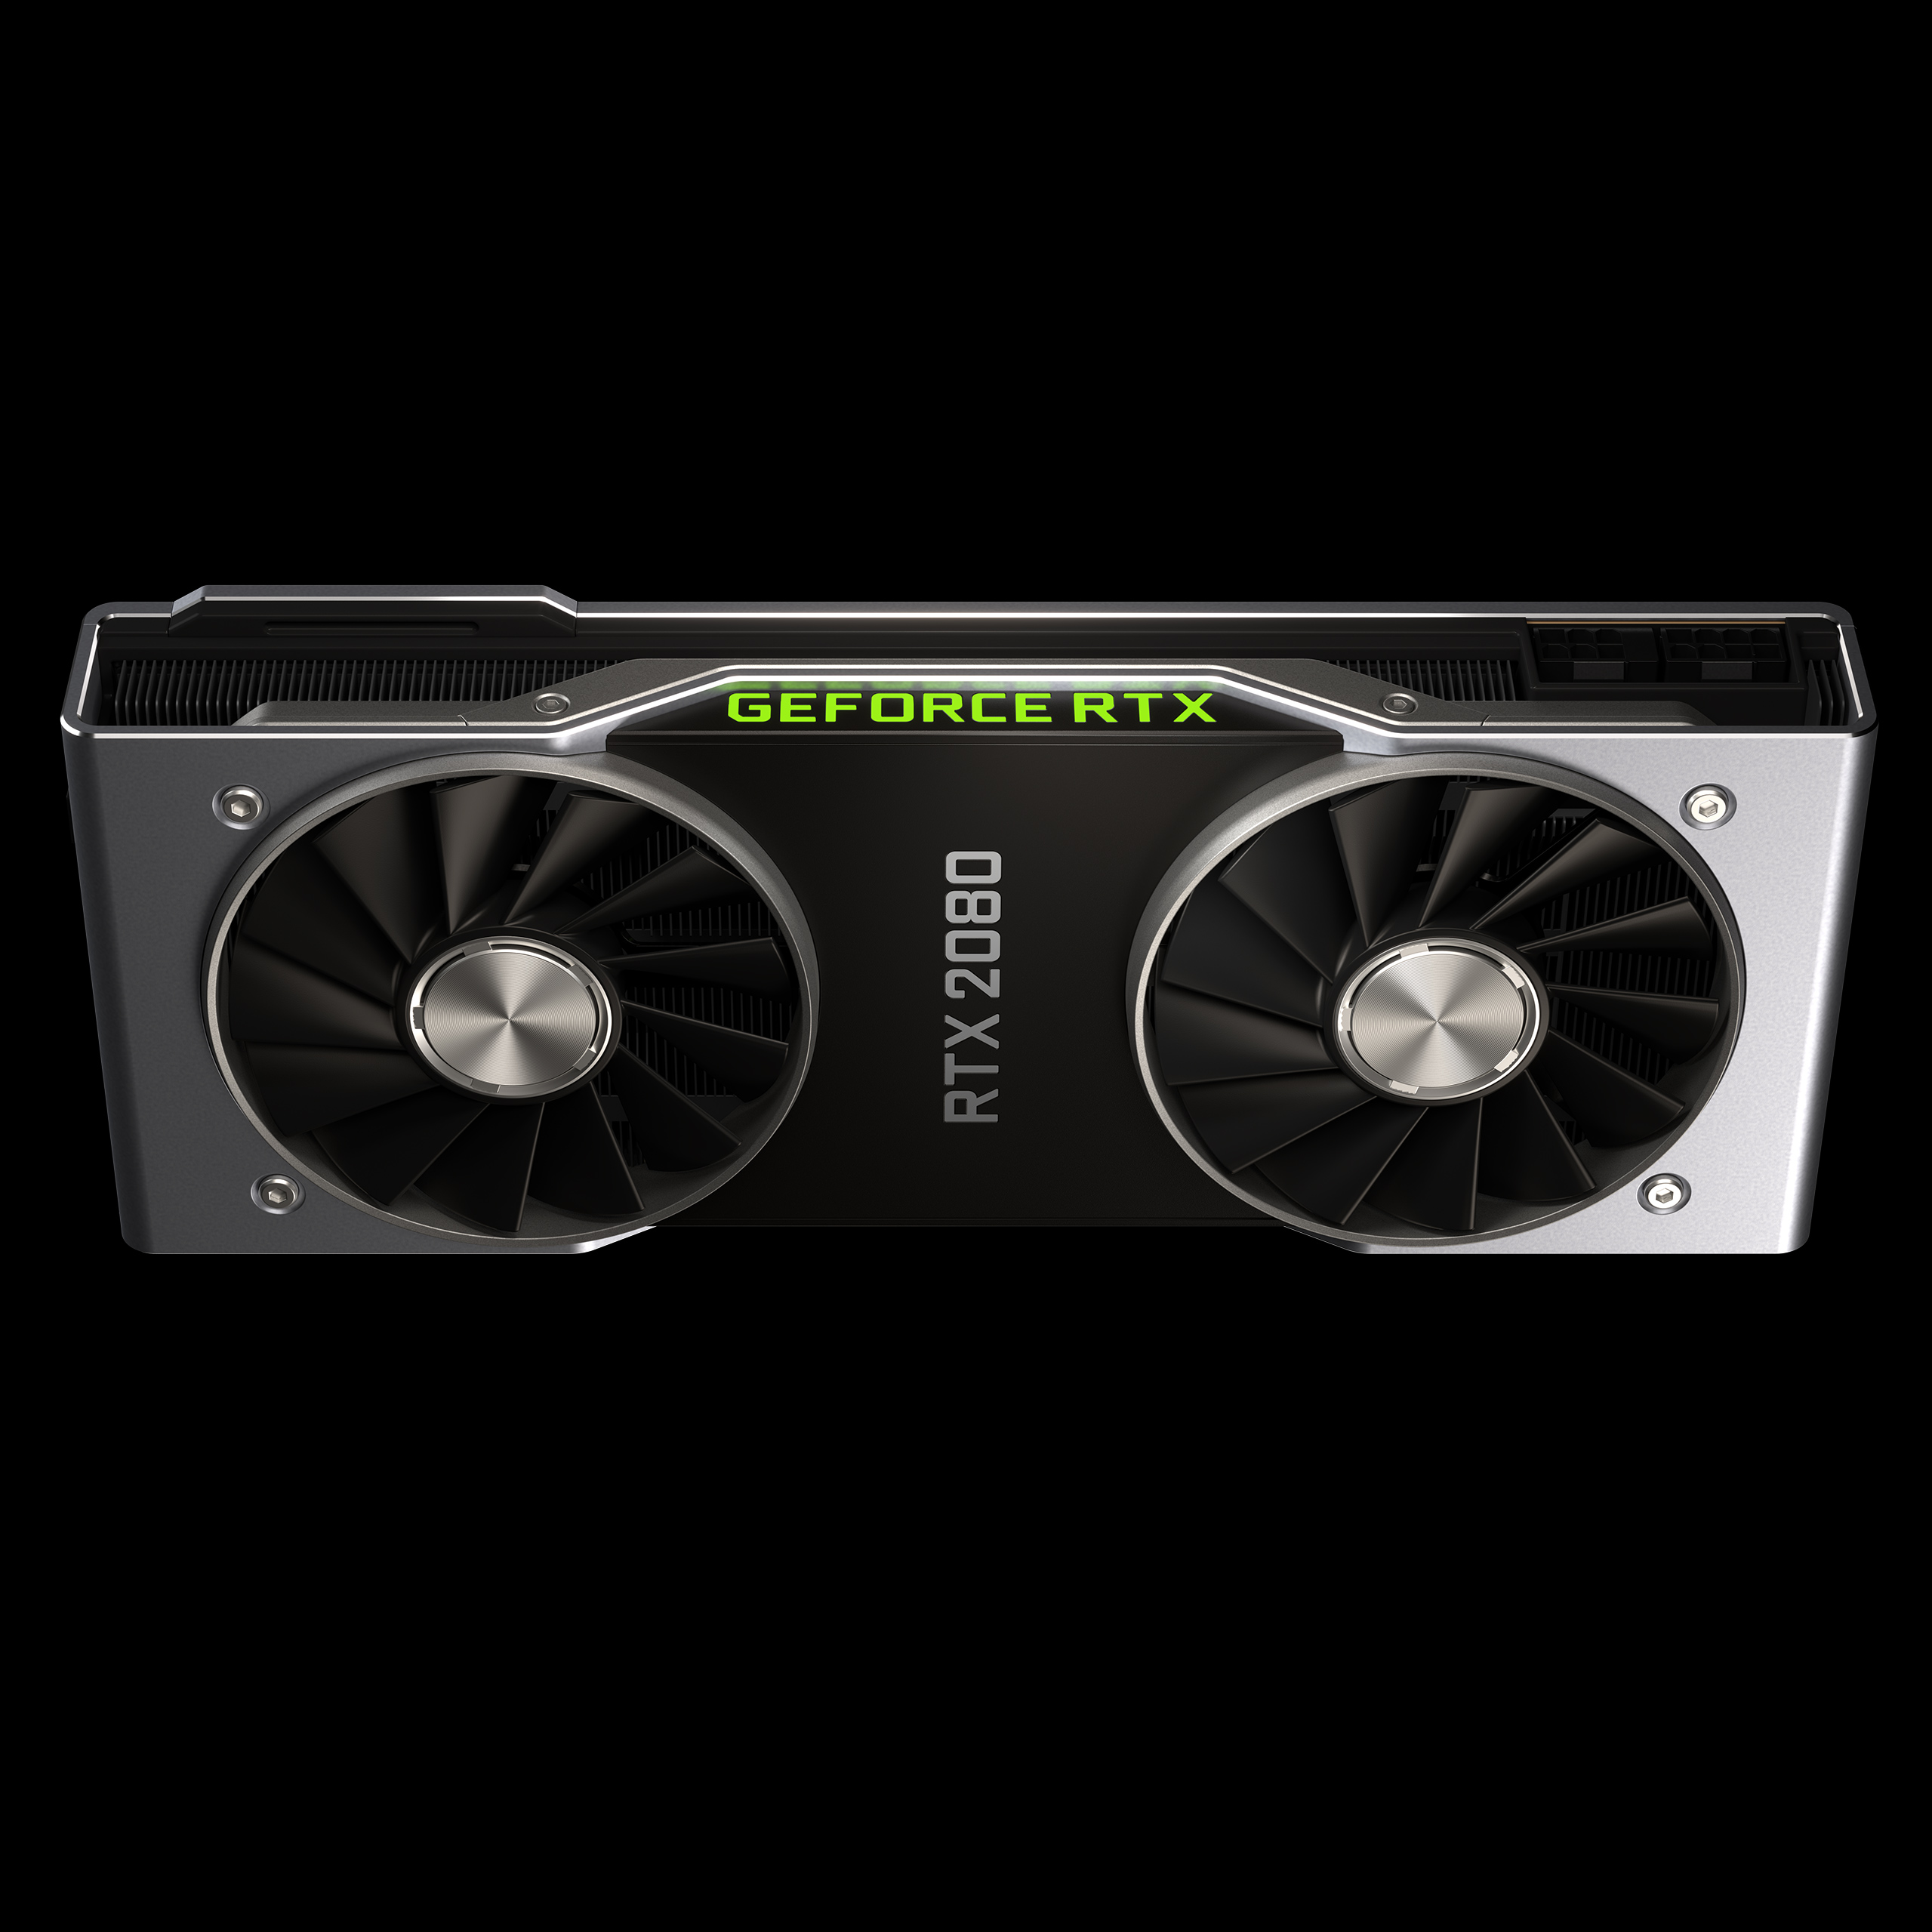 NVIDIA explains why GeForce RTX Founders Editions are